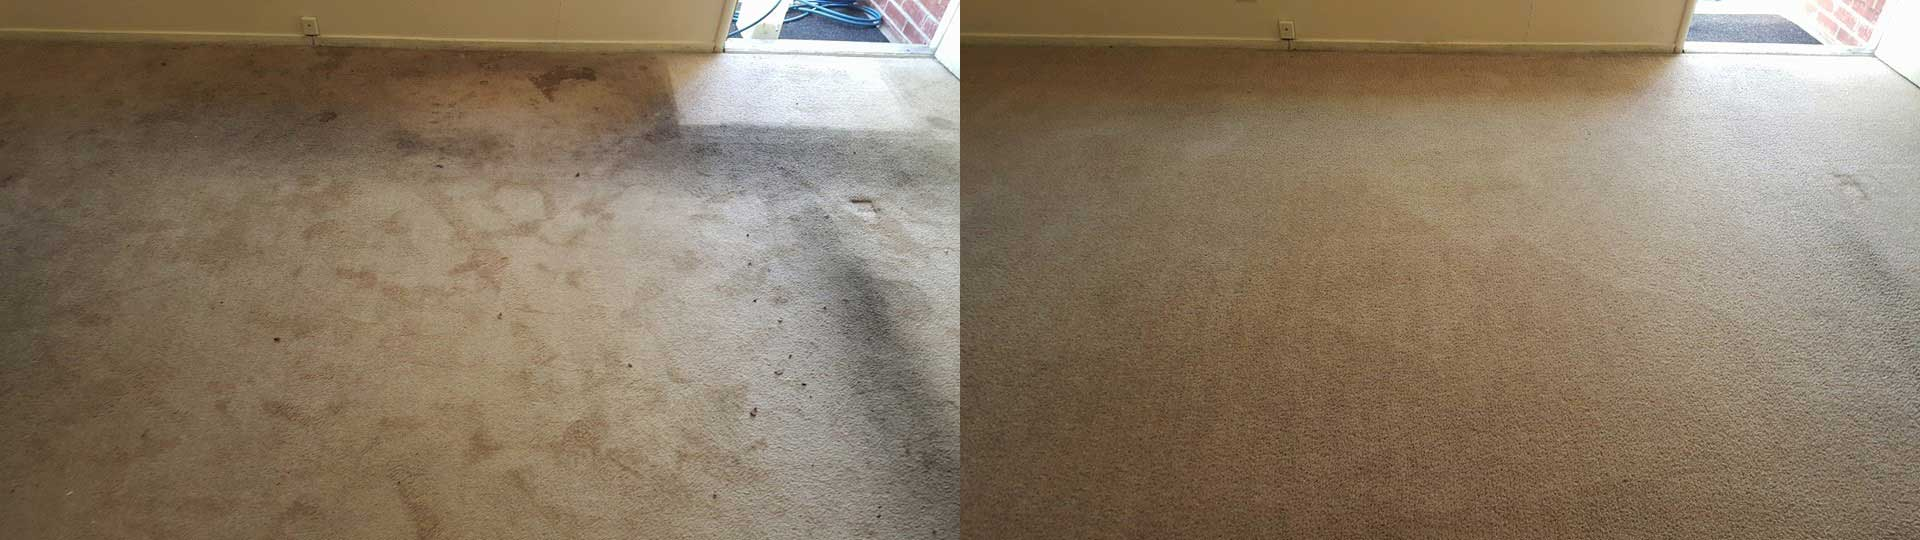 carpet cleaning Rancho Cordova CA